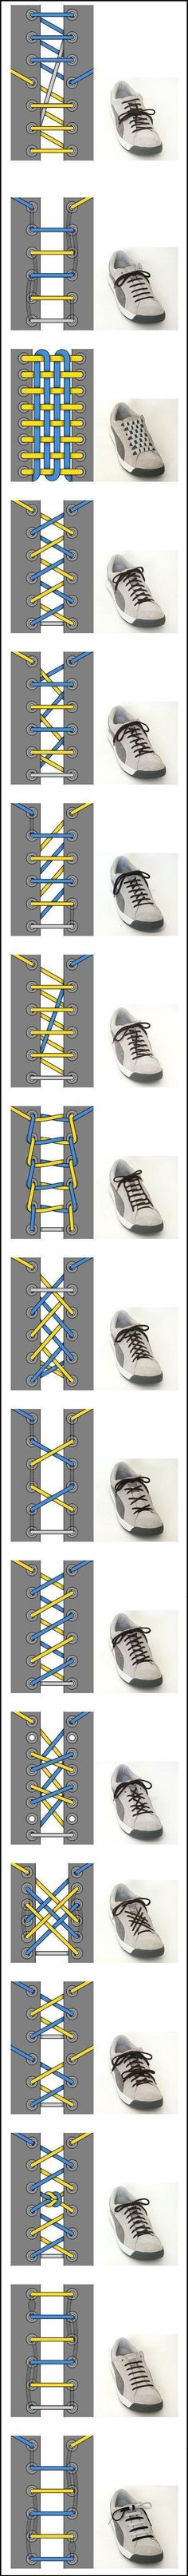 Who knew... so many ways to lace a shoe...